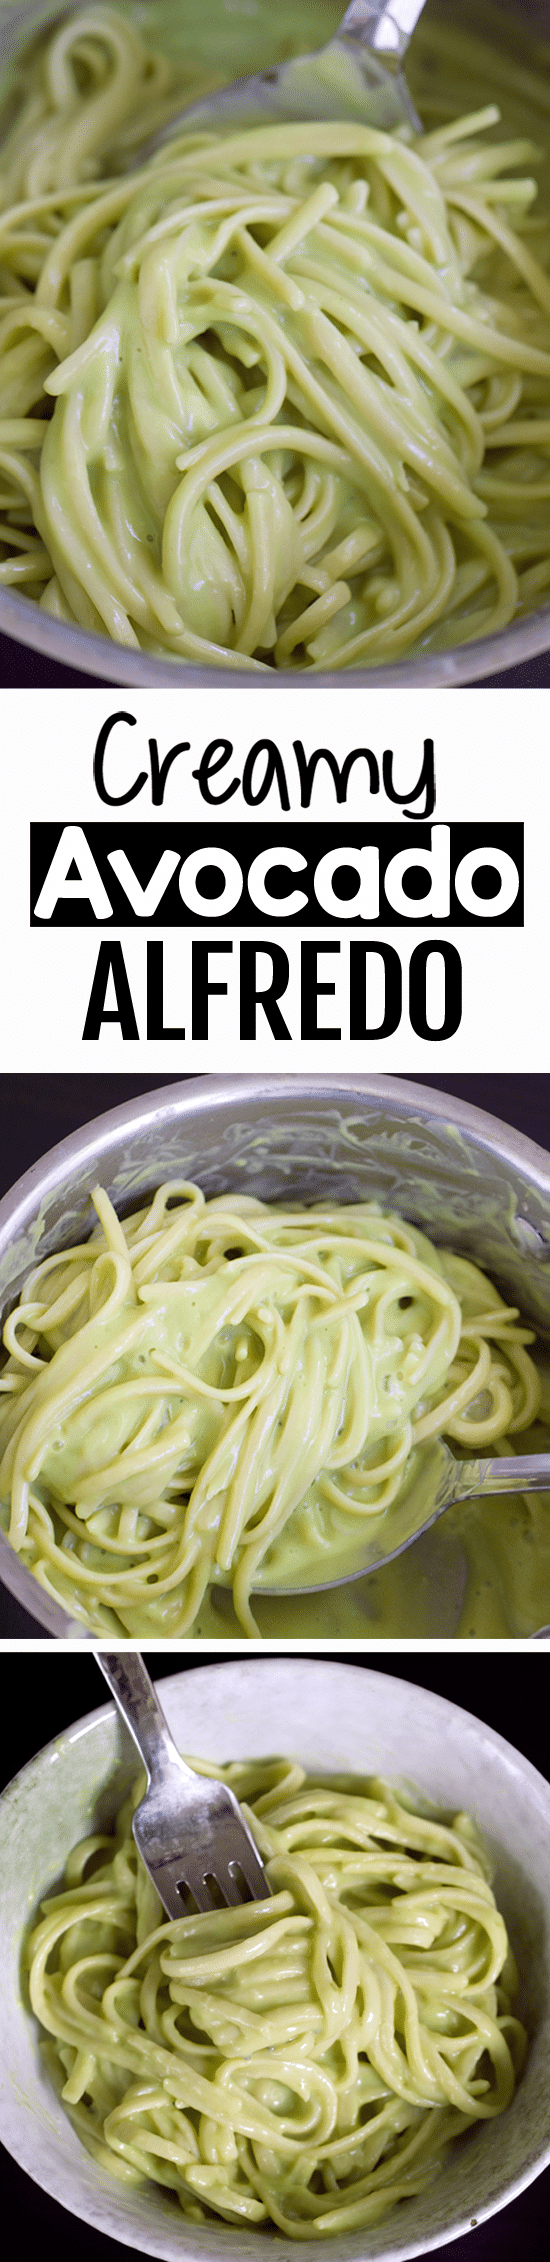 Creamy Secretly Healthy Avocado Alfredo Pasta Sauce Recipe